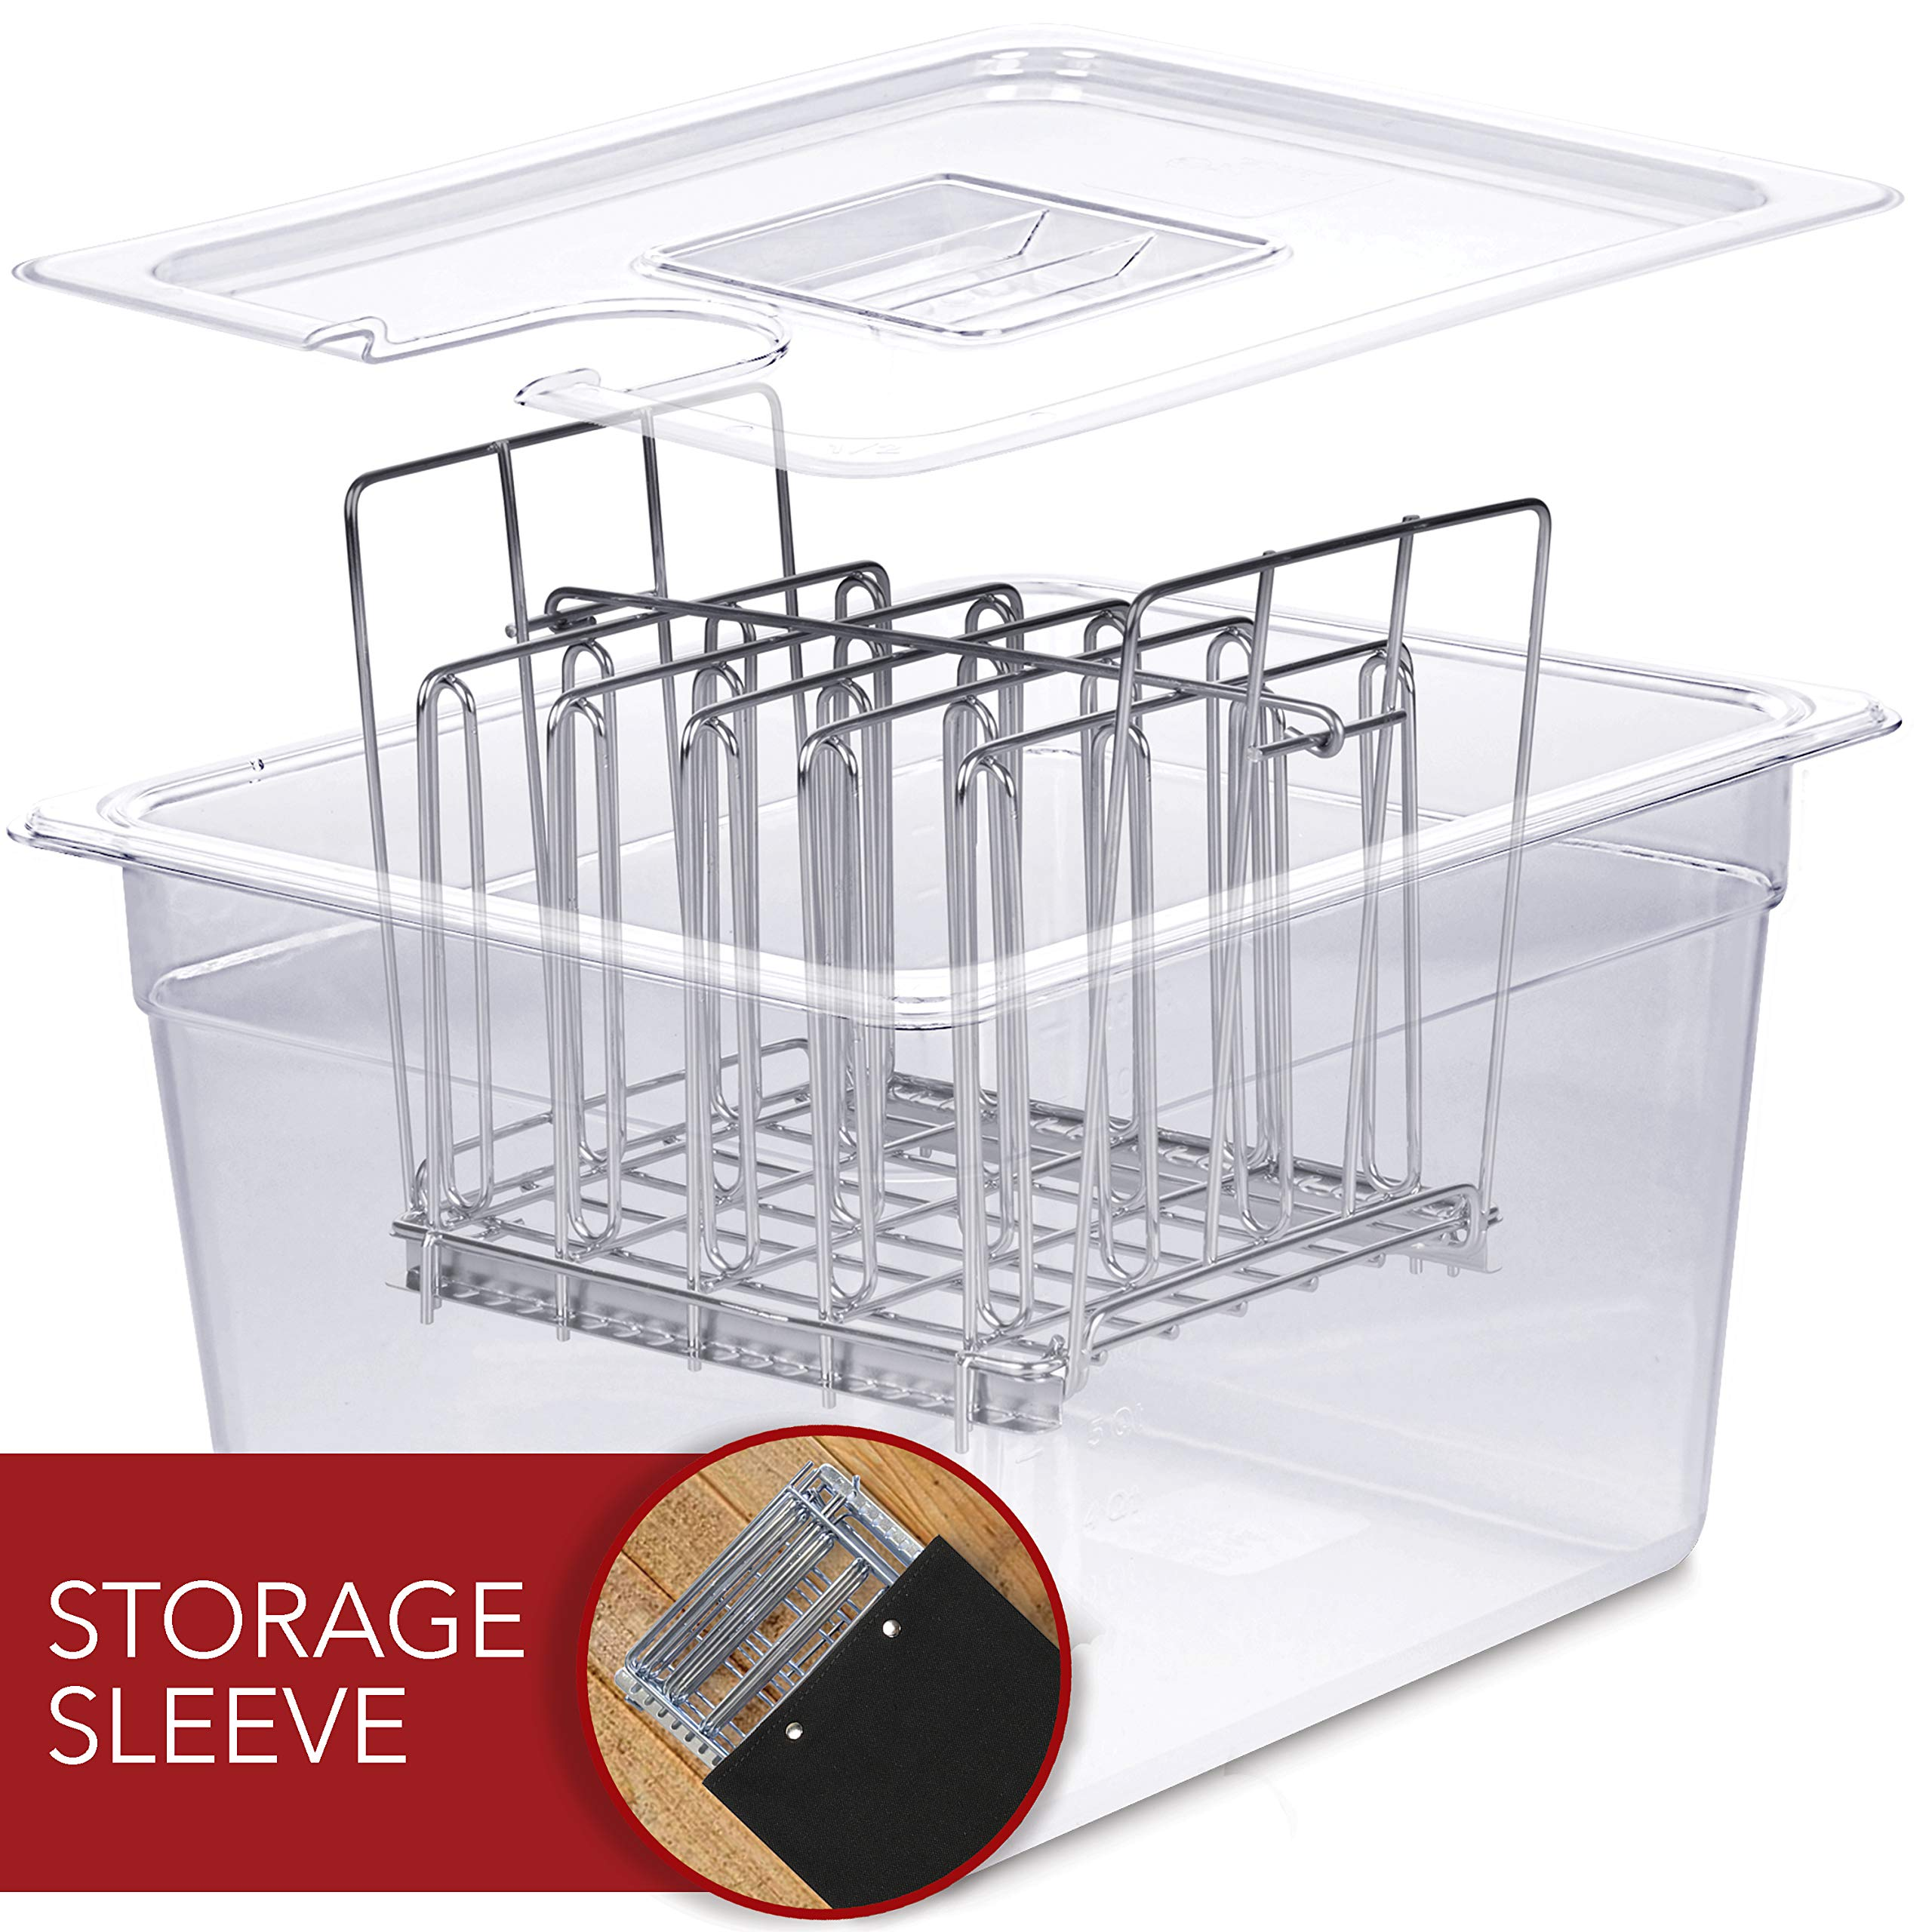 VÄESKE Sous Vide Container with Lid & Rack Set - 12 Quart Accessories Kit for Most Sous Vide Cookers - Durable Polycarbonate and Rust-Resistant Stainless Steel by Väeske